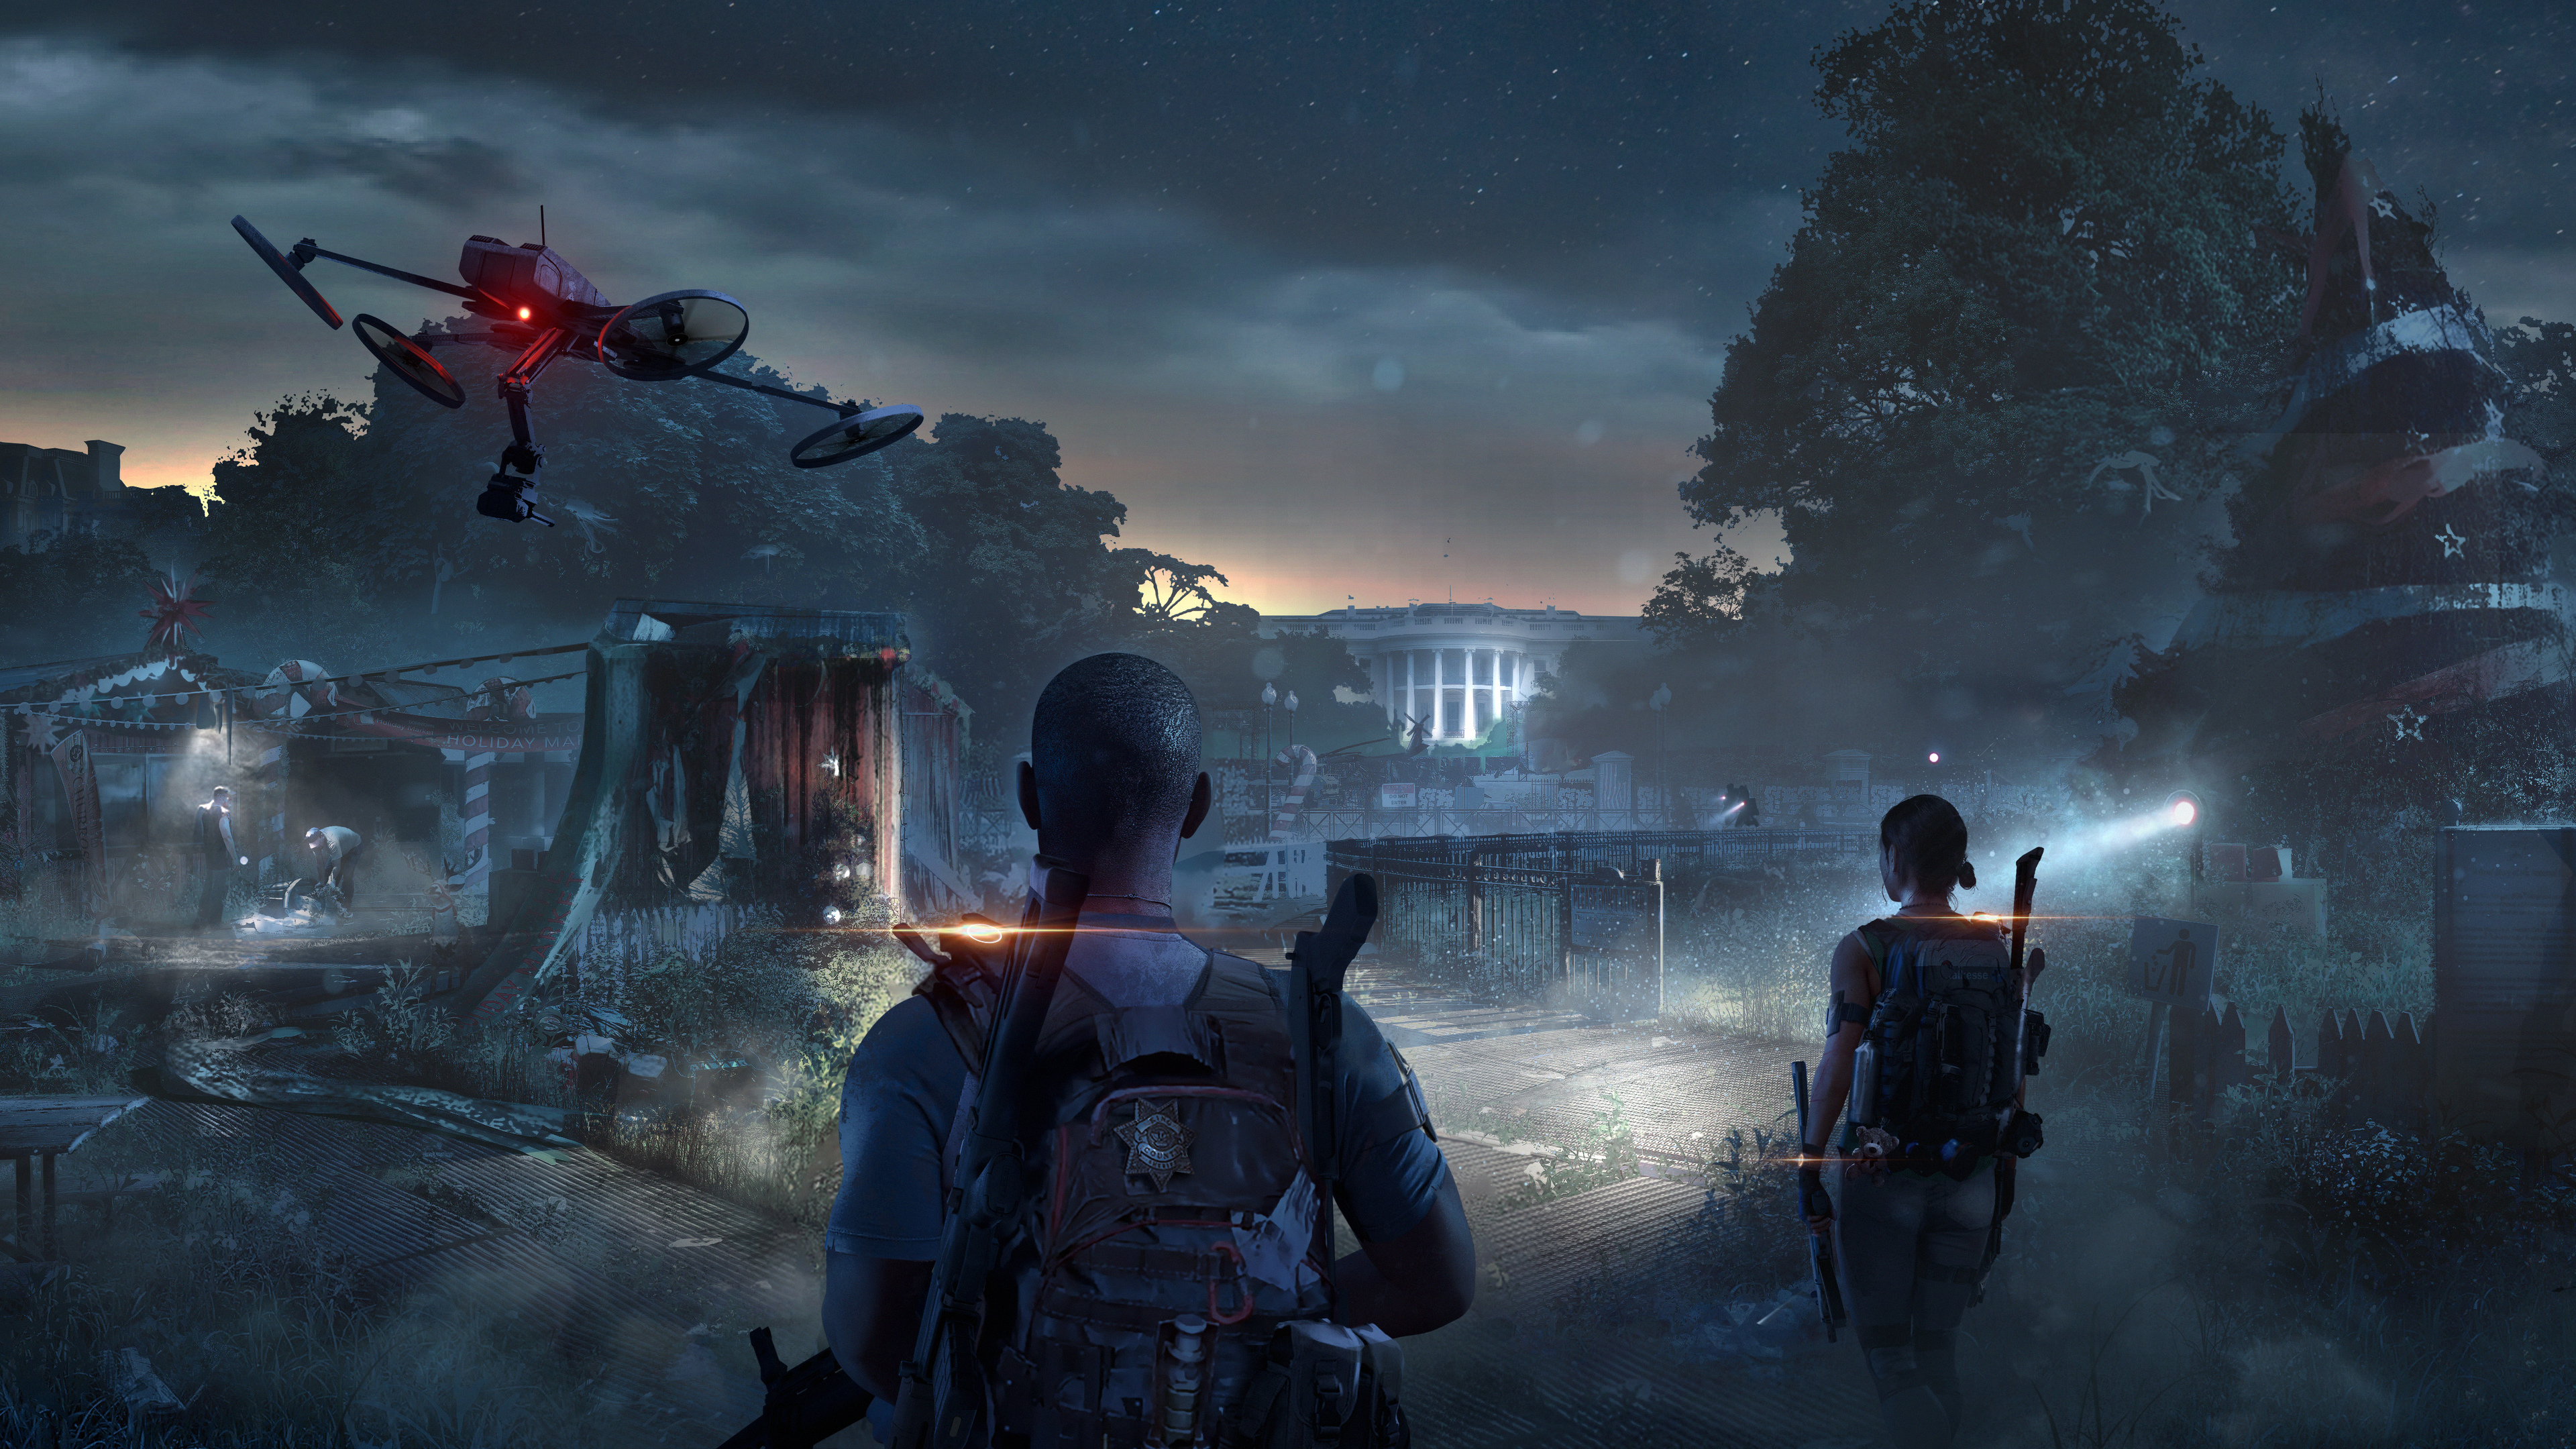 Wallpaper 4k Tom Clancys The Division 2 Game 4k 2019 Games